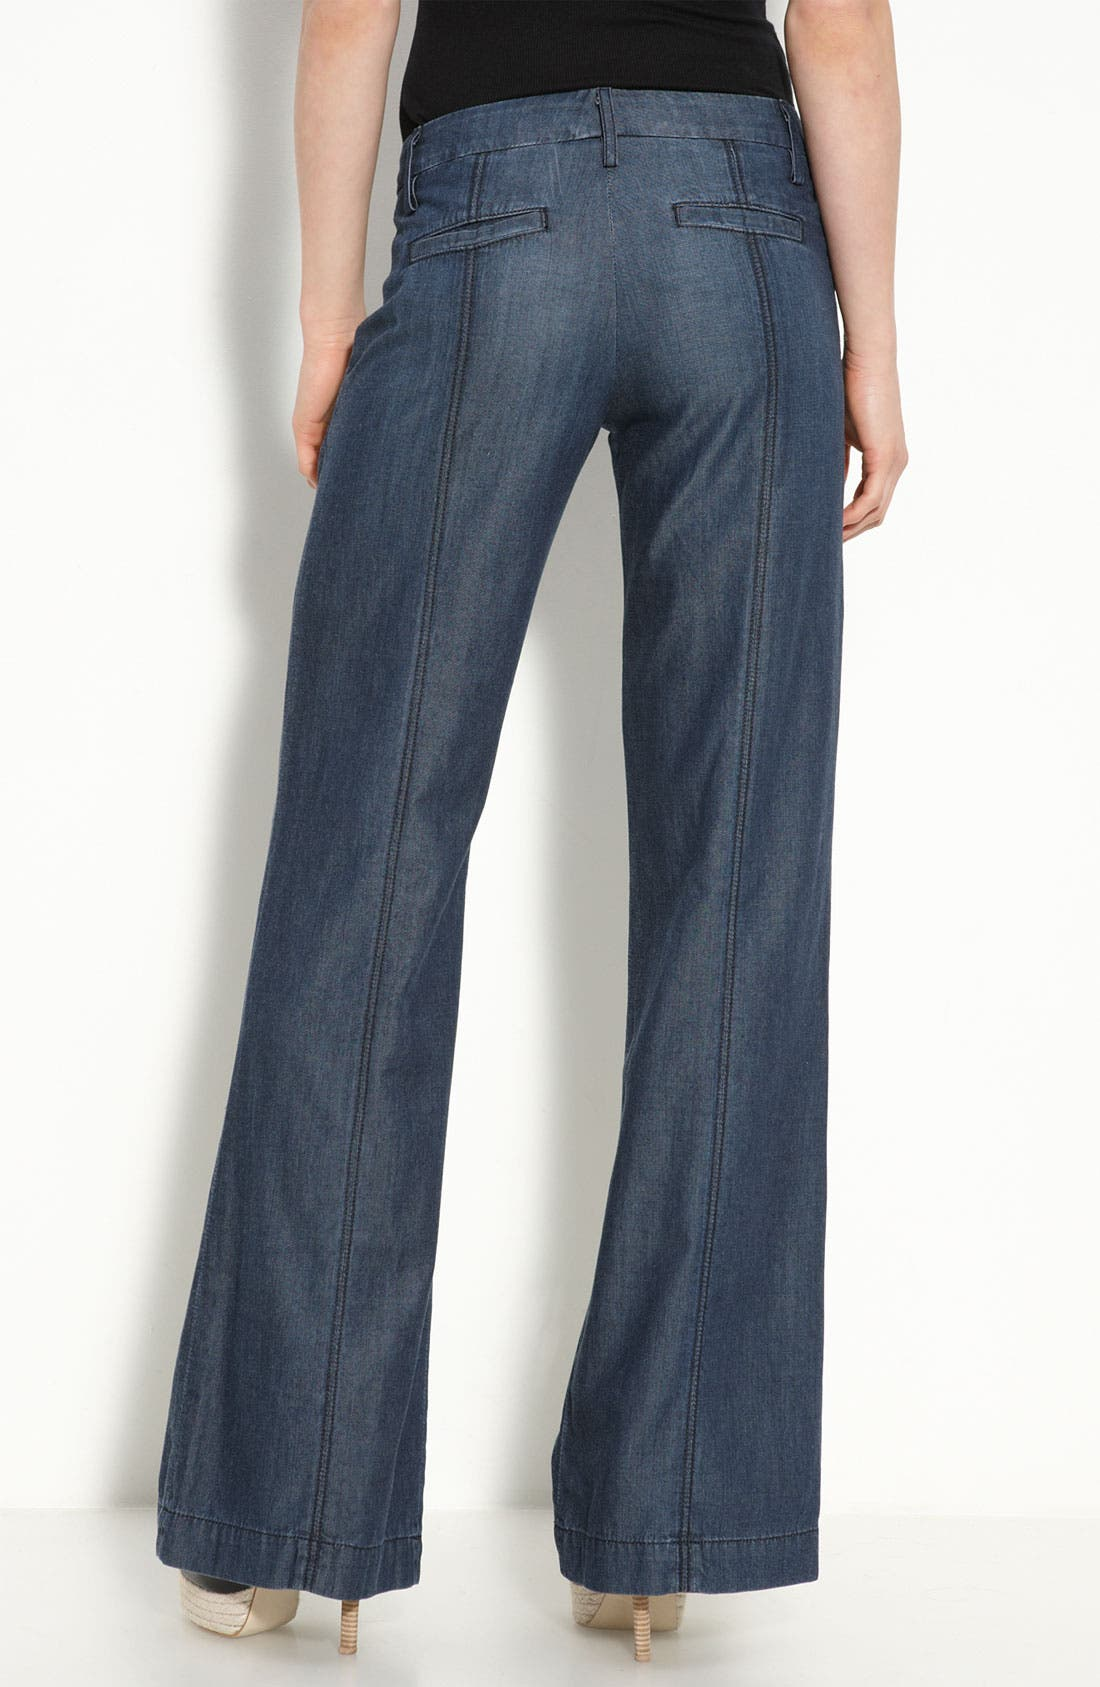 Main Image - Rich & Skinny 'Island' Stretch Trousers (River Rinse Wash)